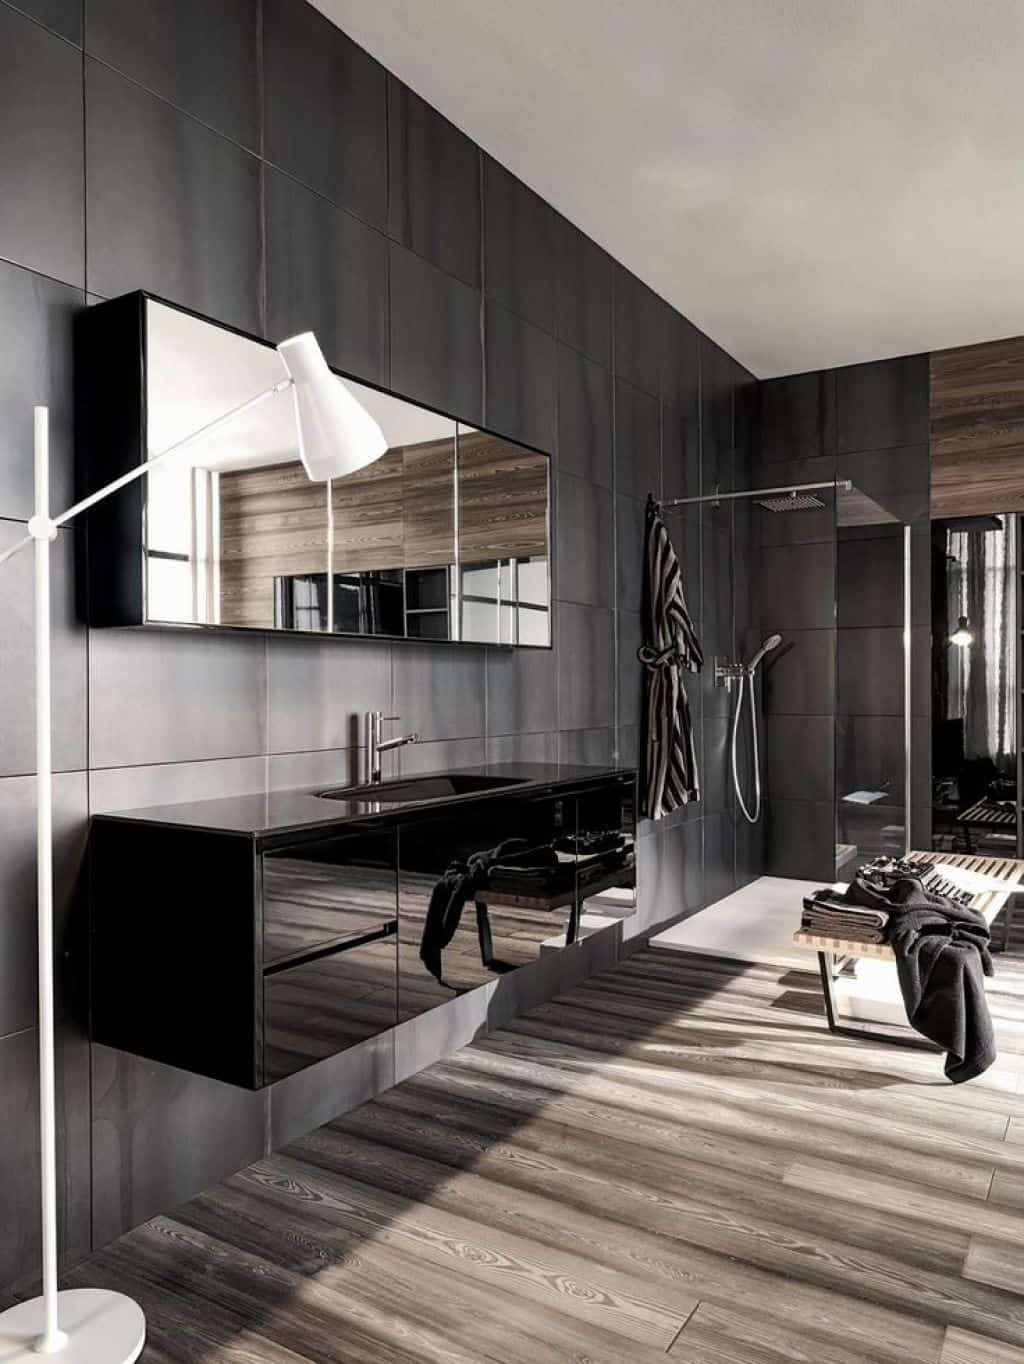 bathroom décor What's Hot On Pinterest Bathroom Décor With Floor Lamps! grey masculine bathroom with sleek mounted vanity and walk in shower also white floor lamp